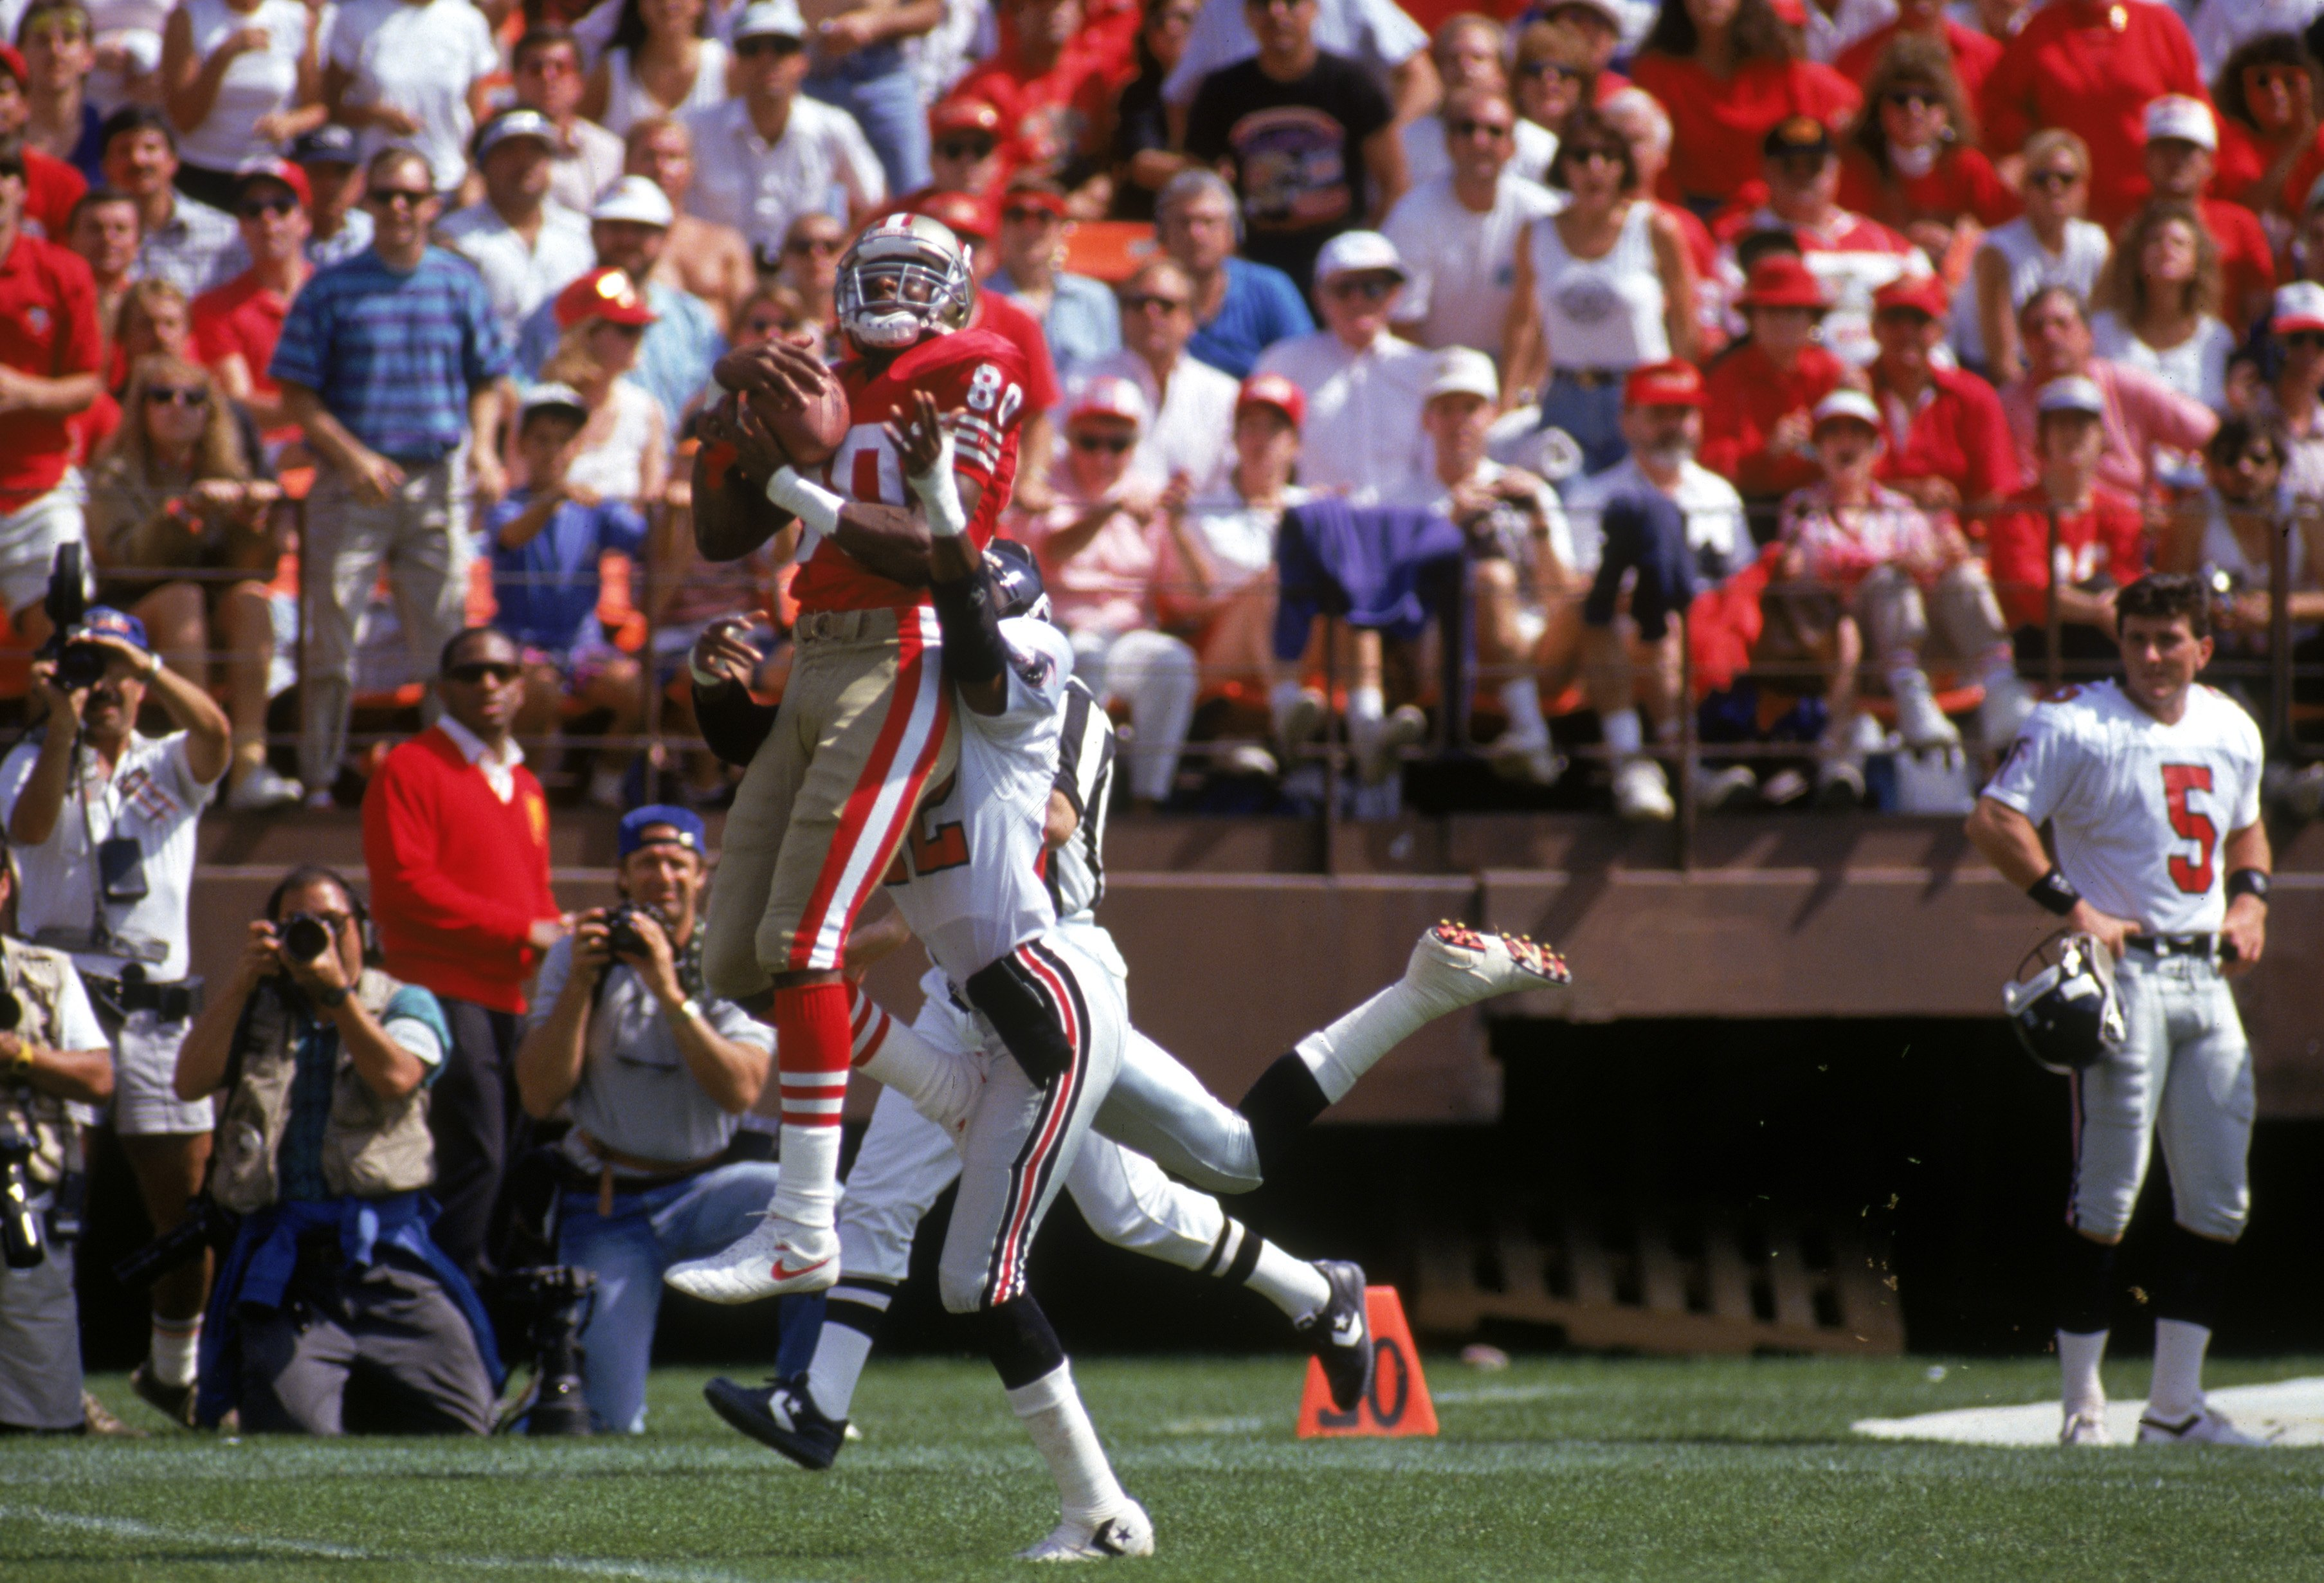 Jerry Rice Makes A Leaping Catch Over Charles Dimry